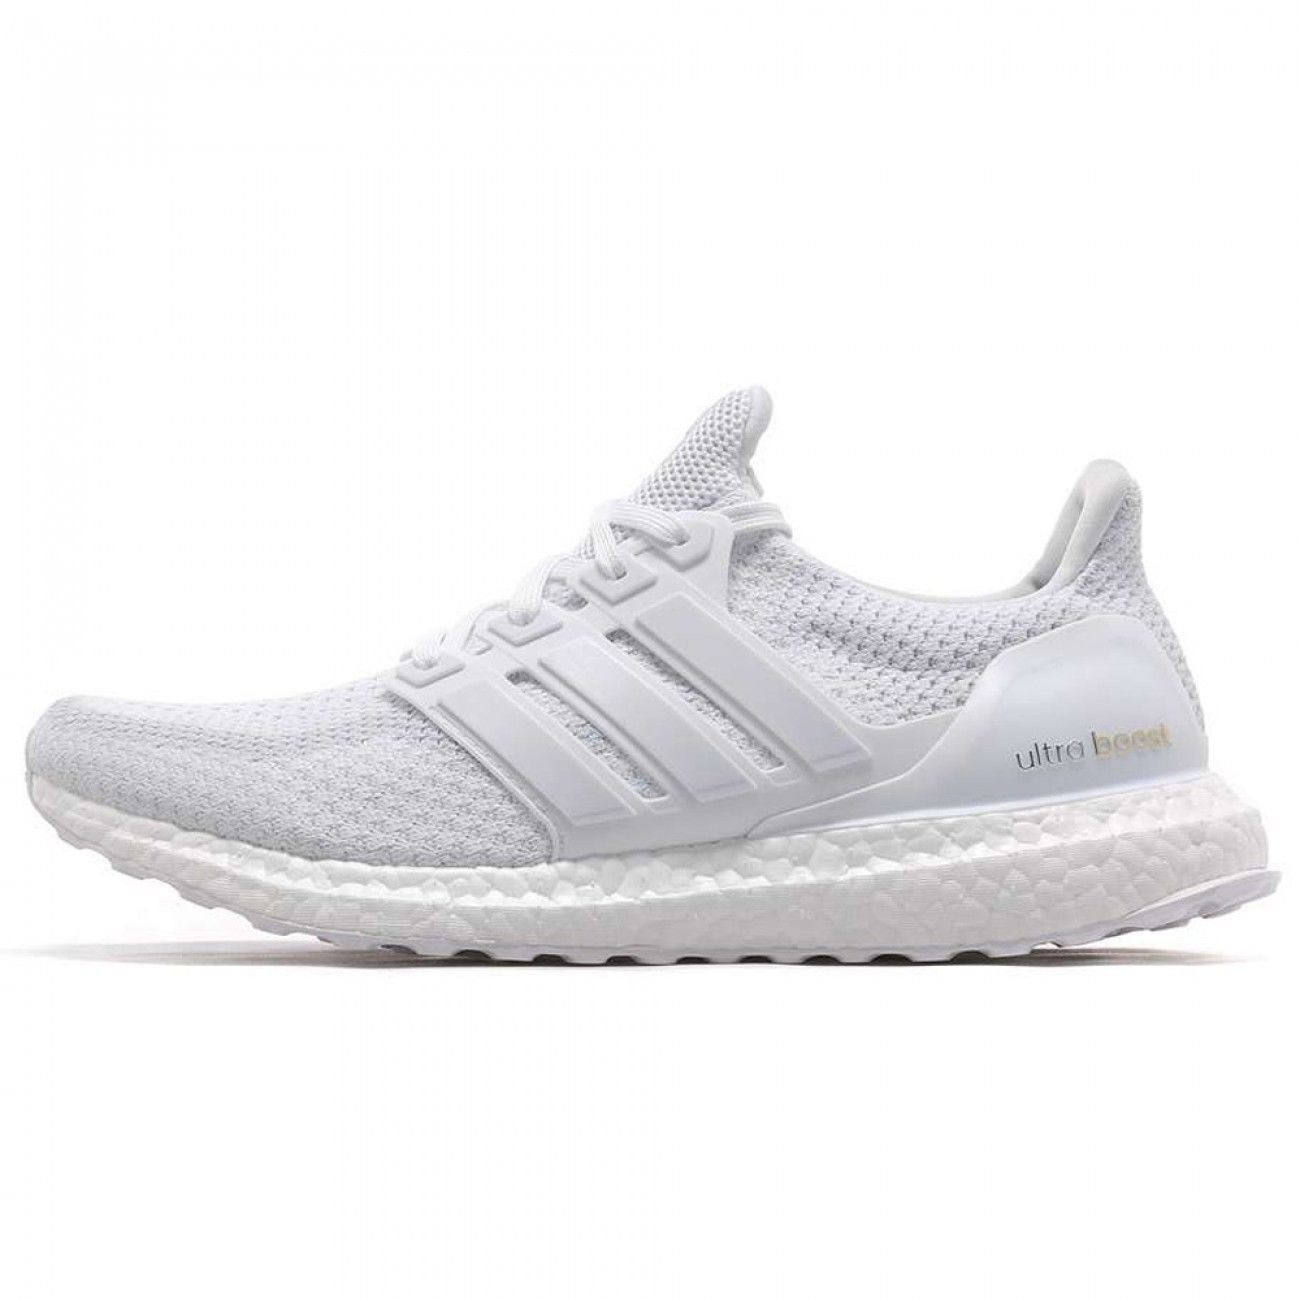 dc2b846f36 adidas ultra boost blanche homme | Pas cher | www.photographe-robin.com